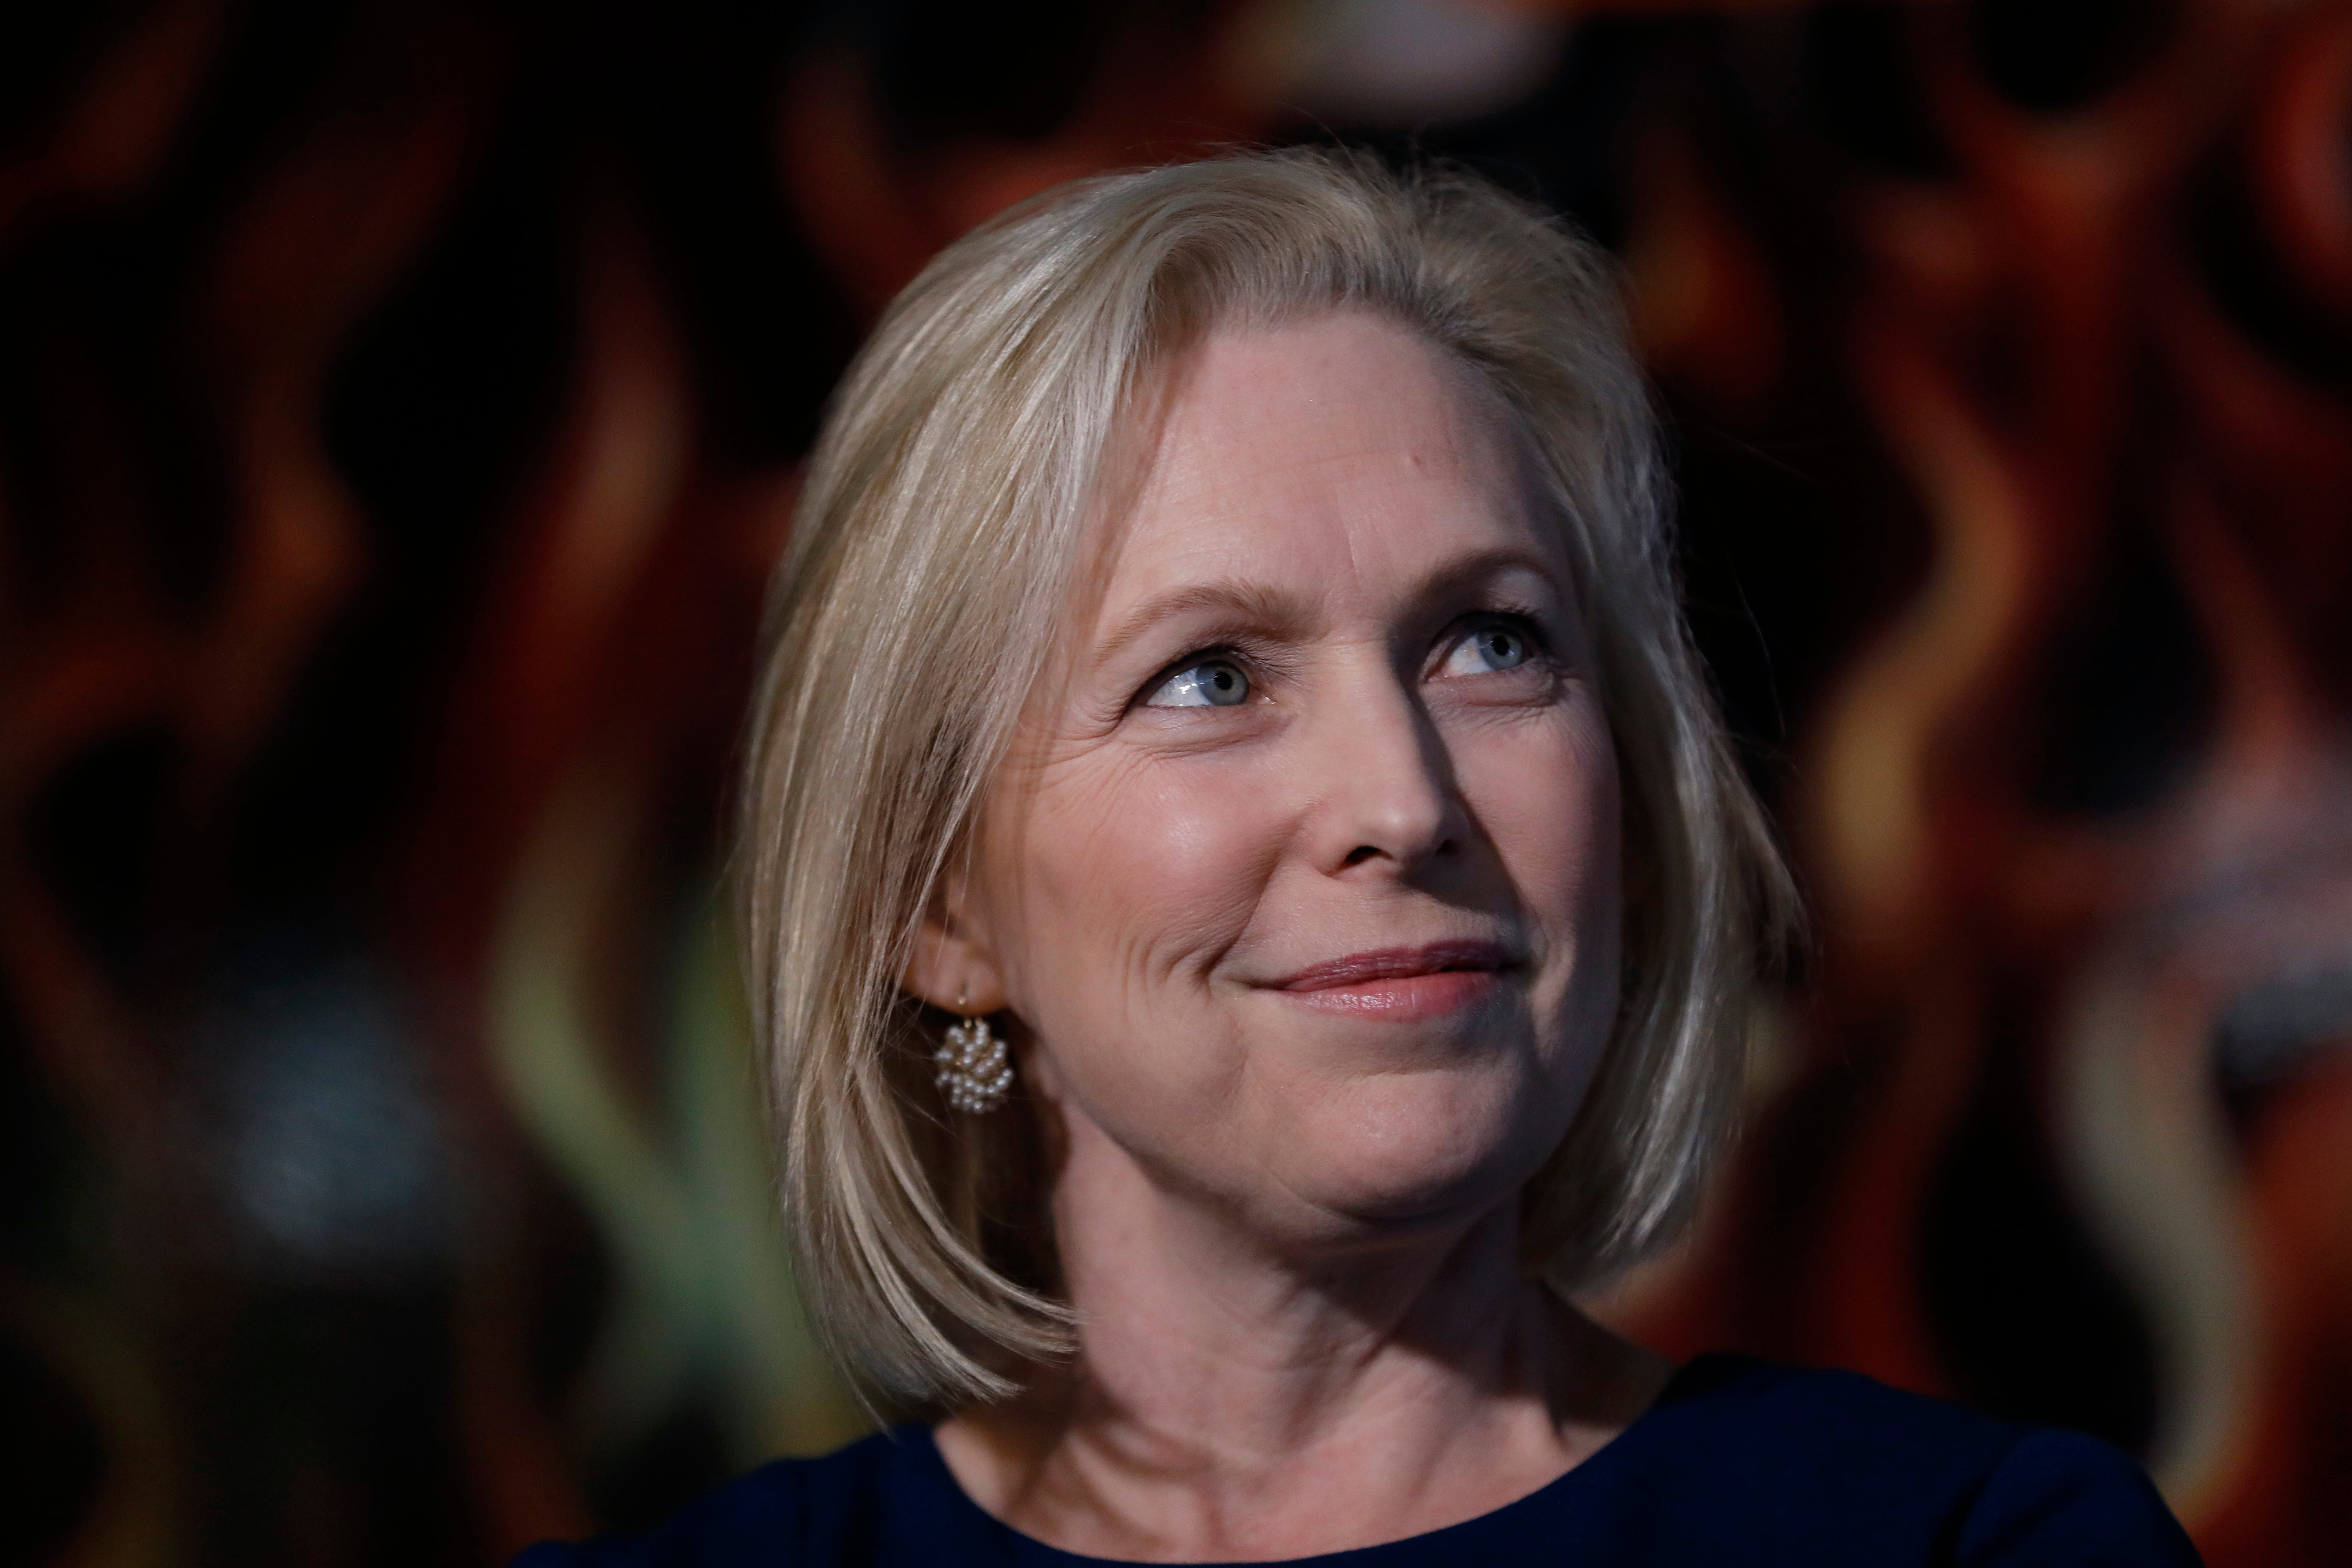 Sen. Kirsten Gillibrand faced harassment complaint in her own office, report says